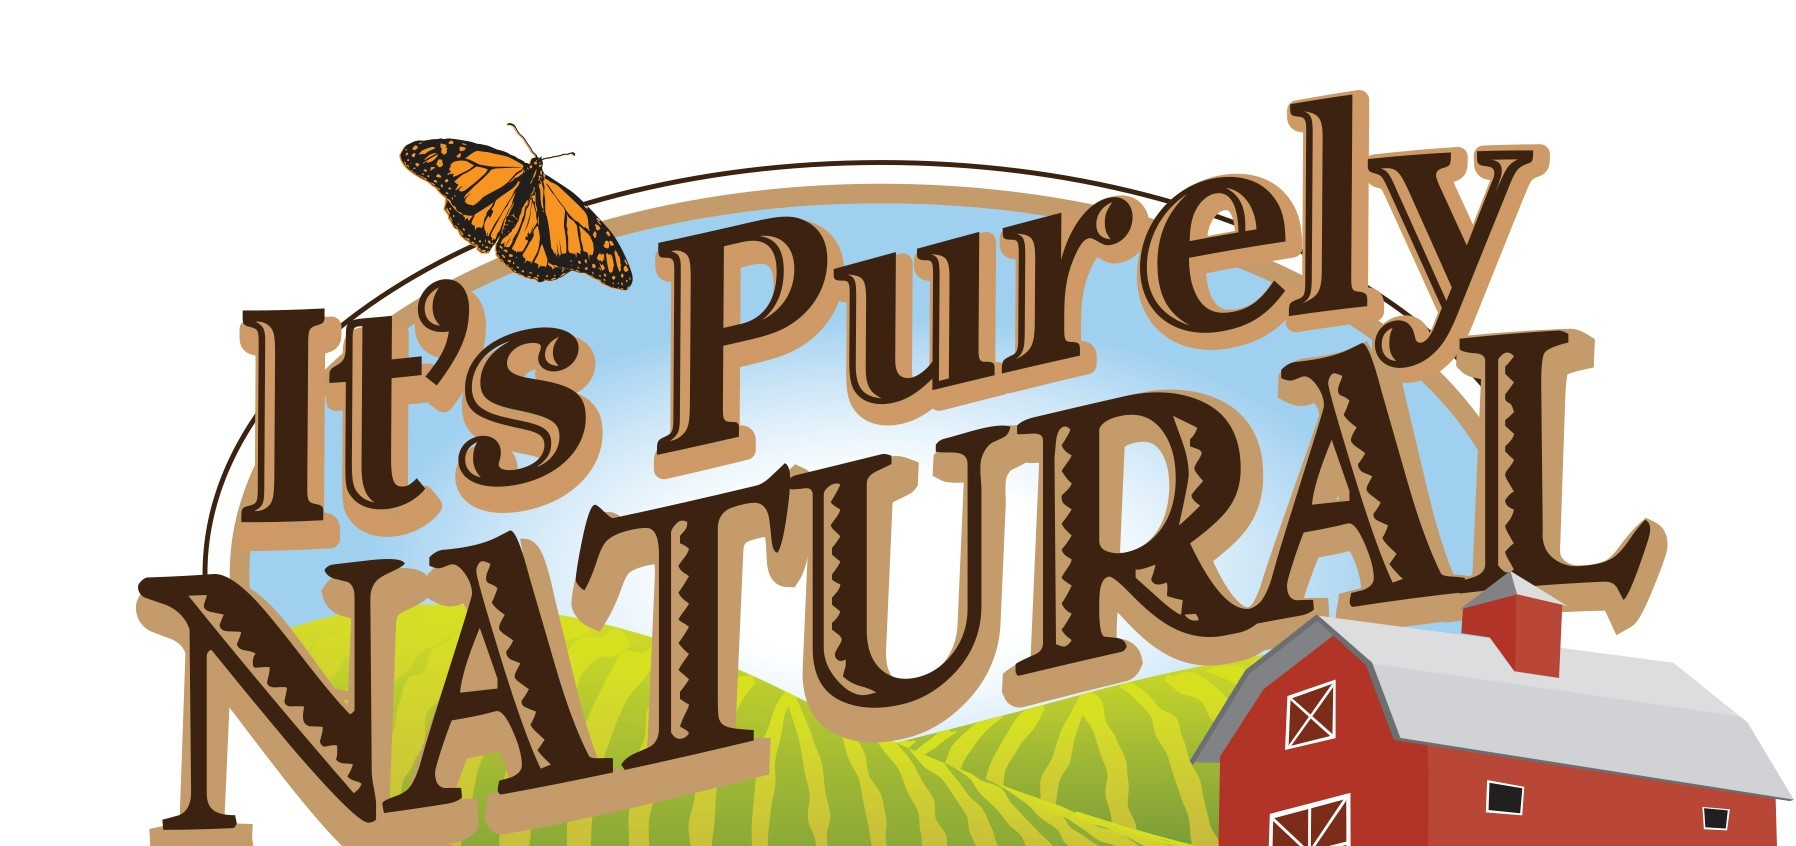 It's Purely Natural Logo Image